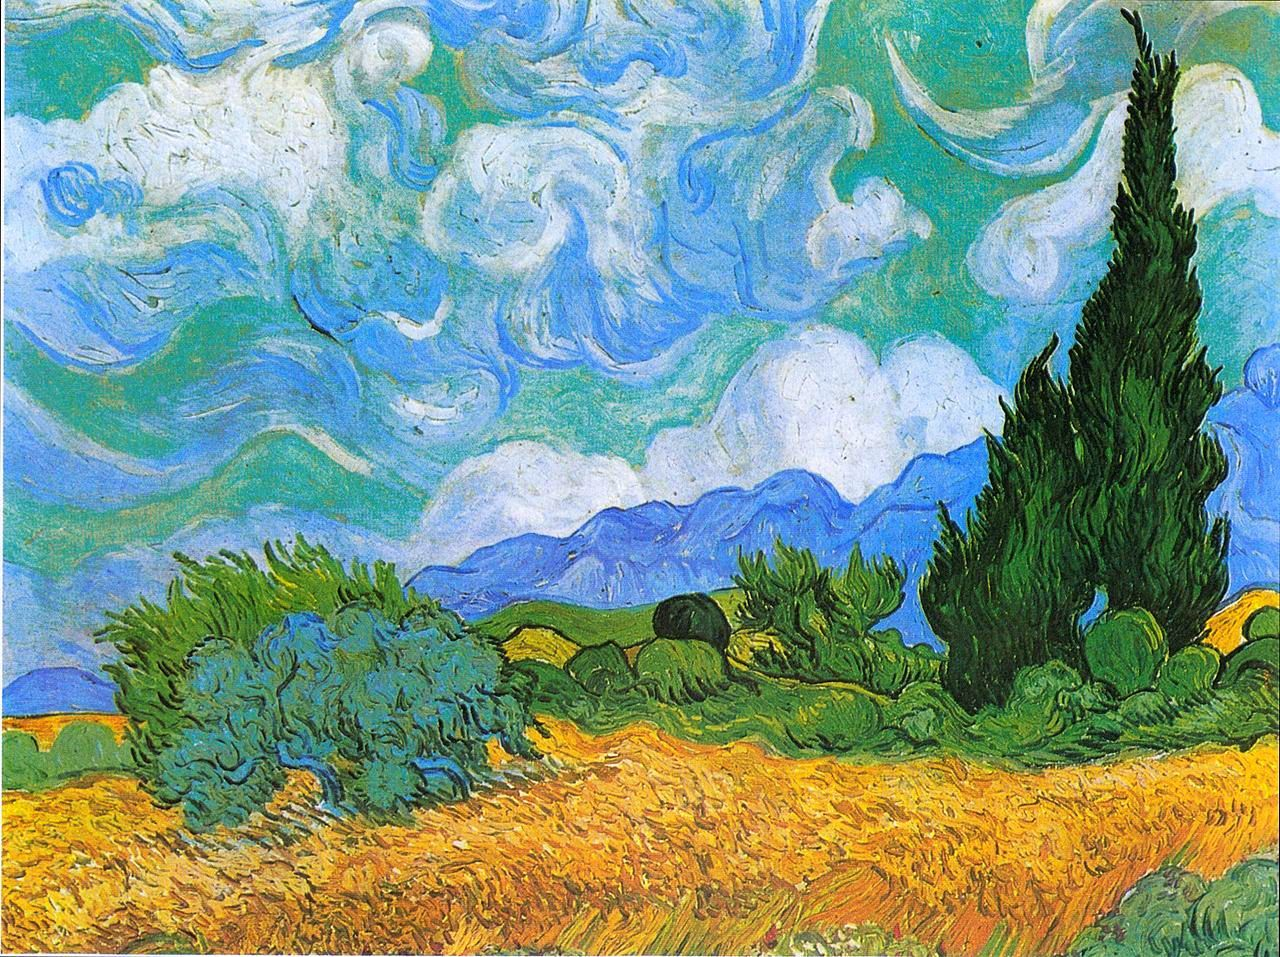 The Athenaeum Wheatfield With Cypress Vincent Van Gogh 1889 美しい絵画 ゴッホ 作品 油絵の花